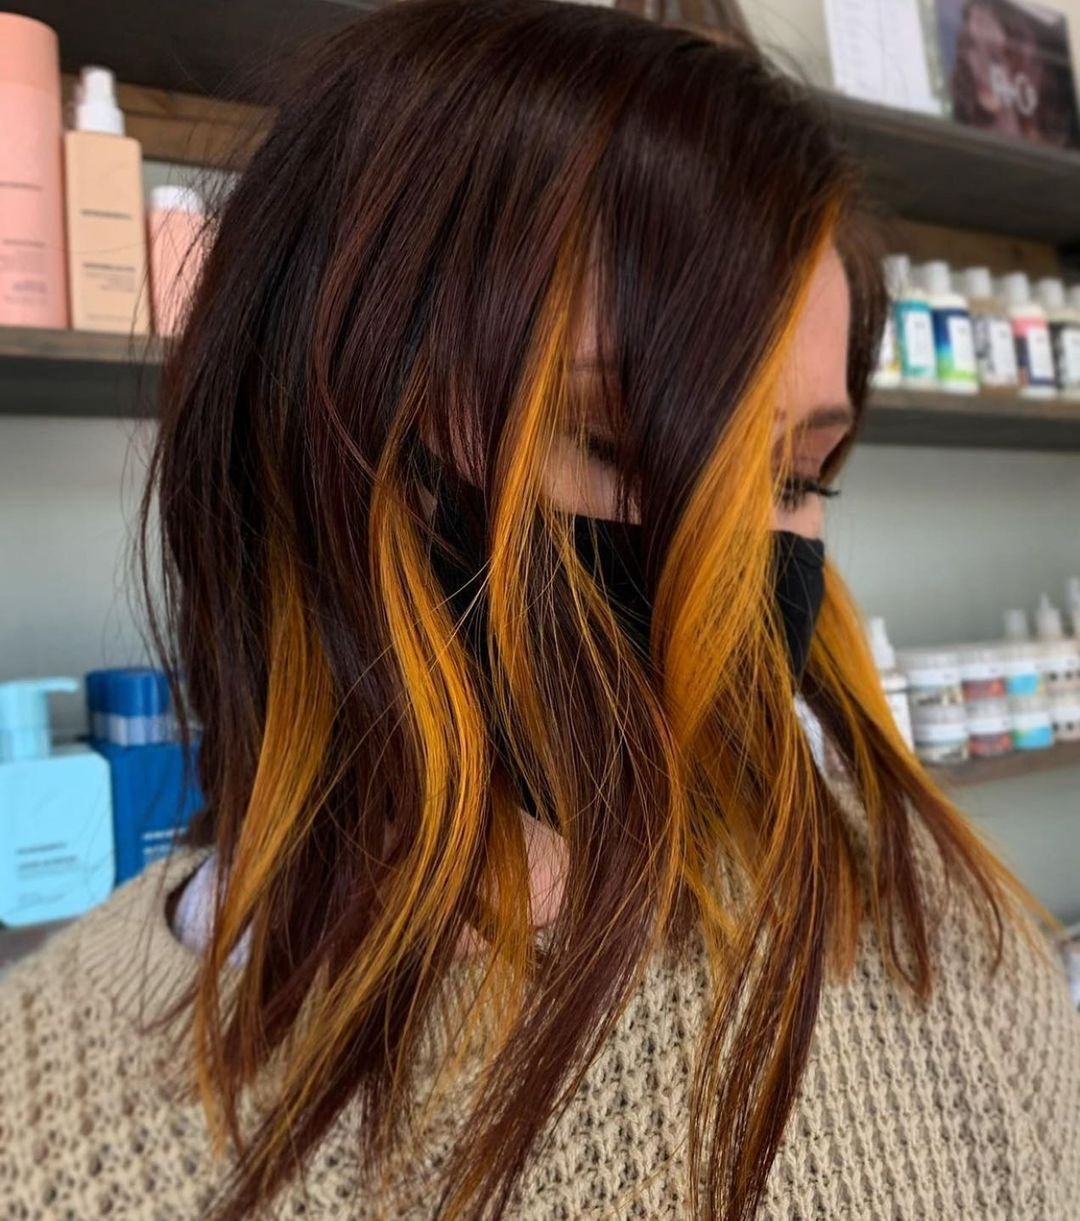 10 ombre balayage lob hairstyles with color surprise!